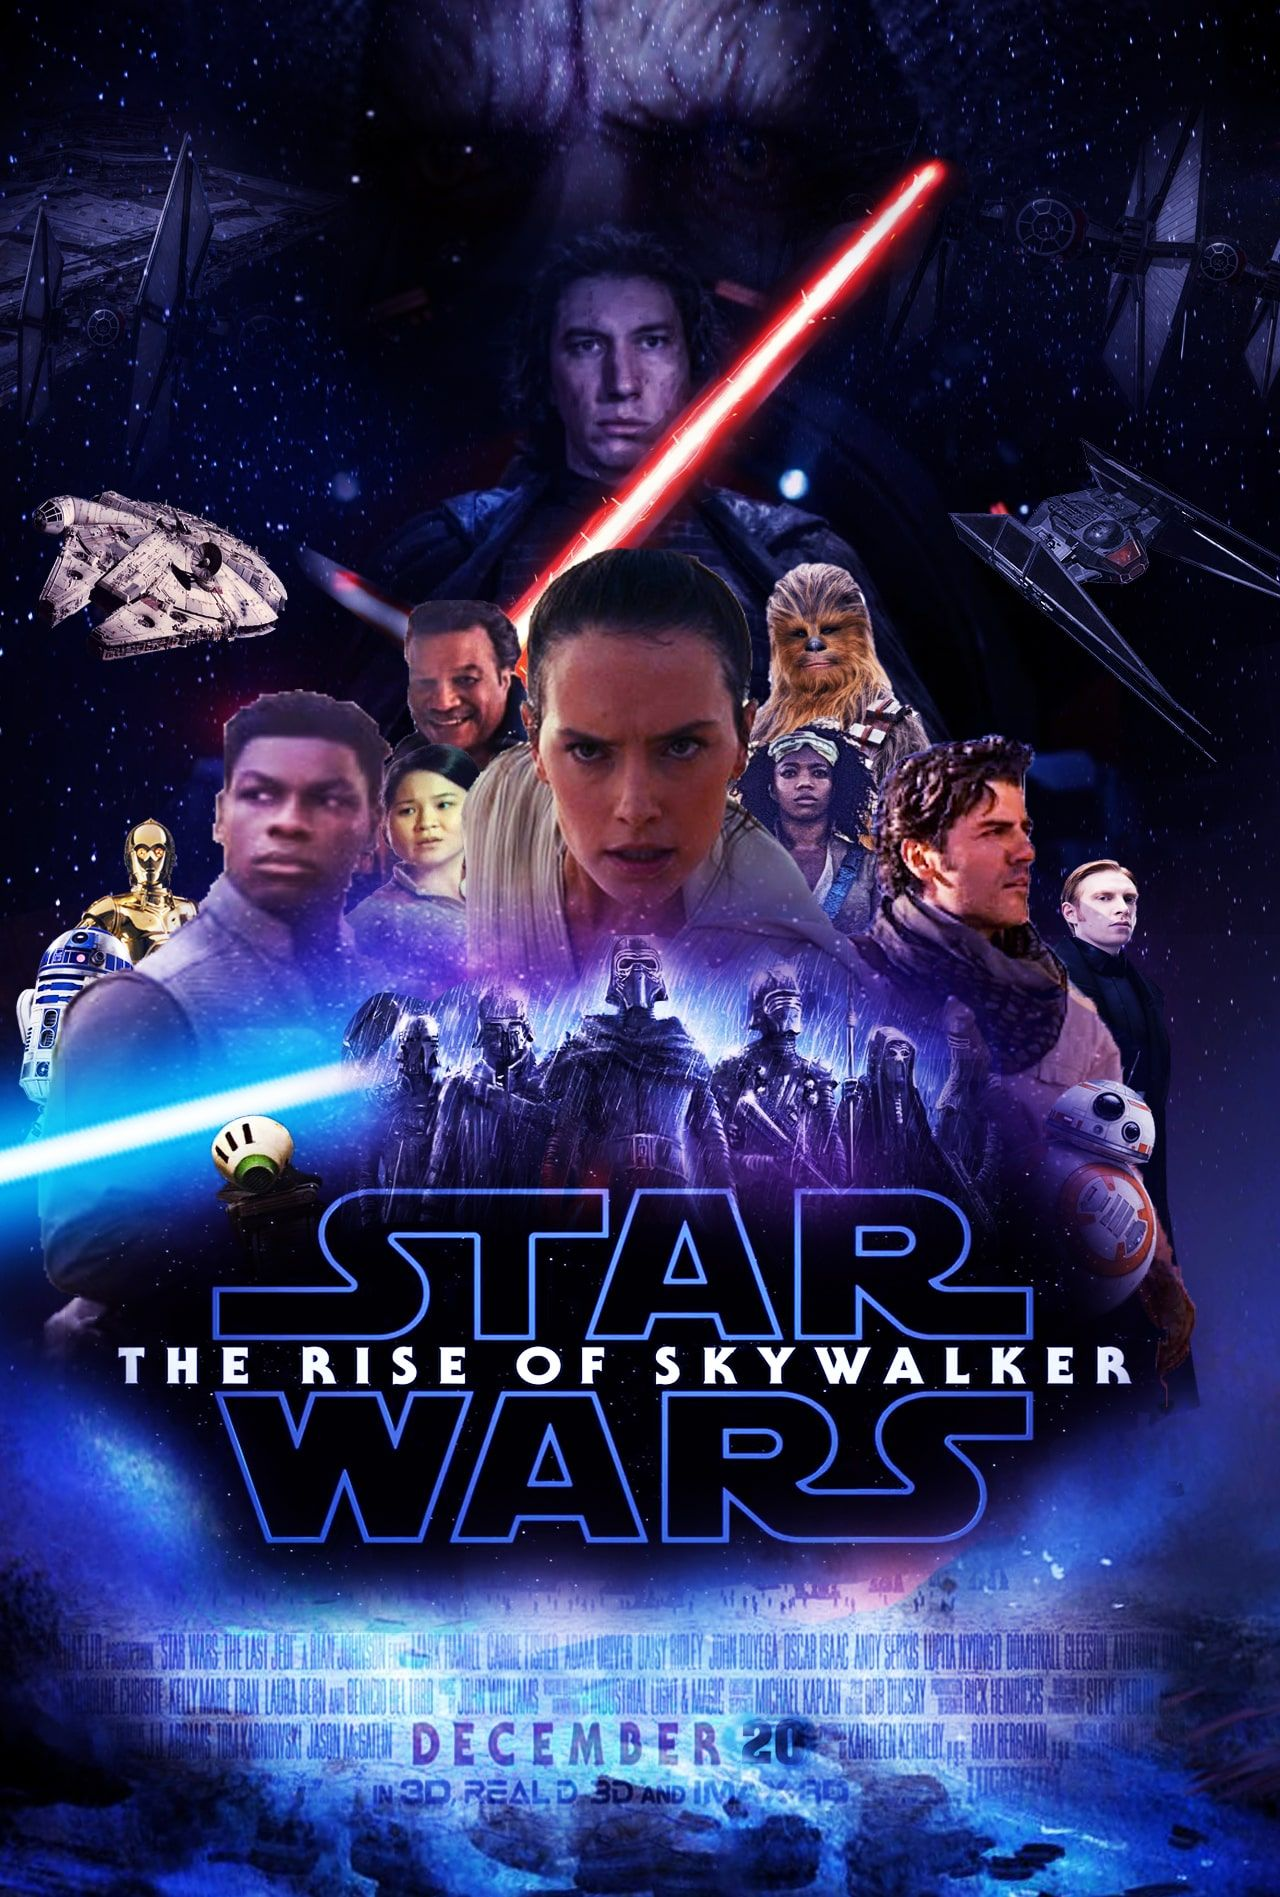 Star Wars The Rise Of Skywalker Hd Wallpapers 7wallpapers Net Star Wars Movies Posters Star Wars Episodes Star Wars Watch